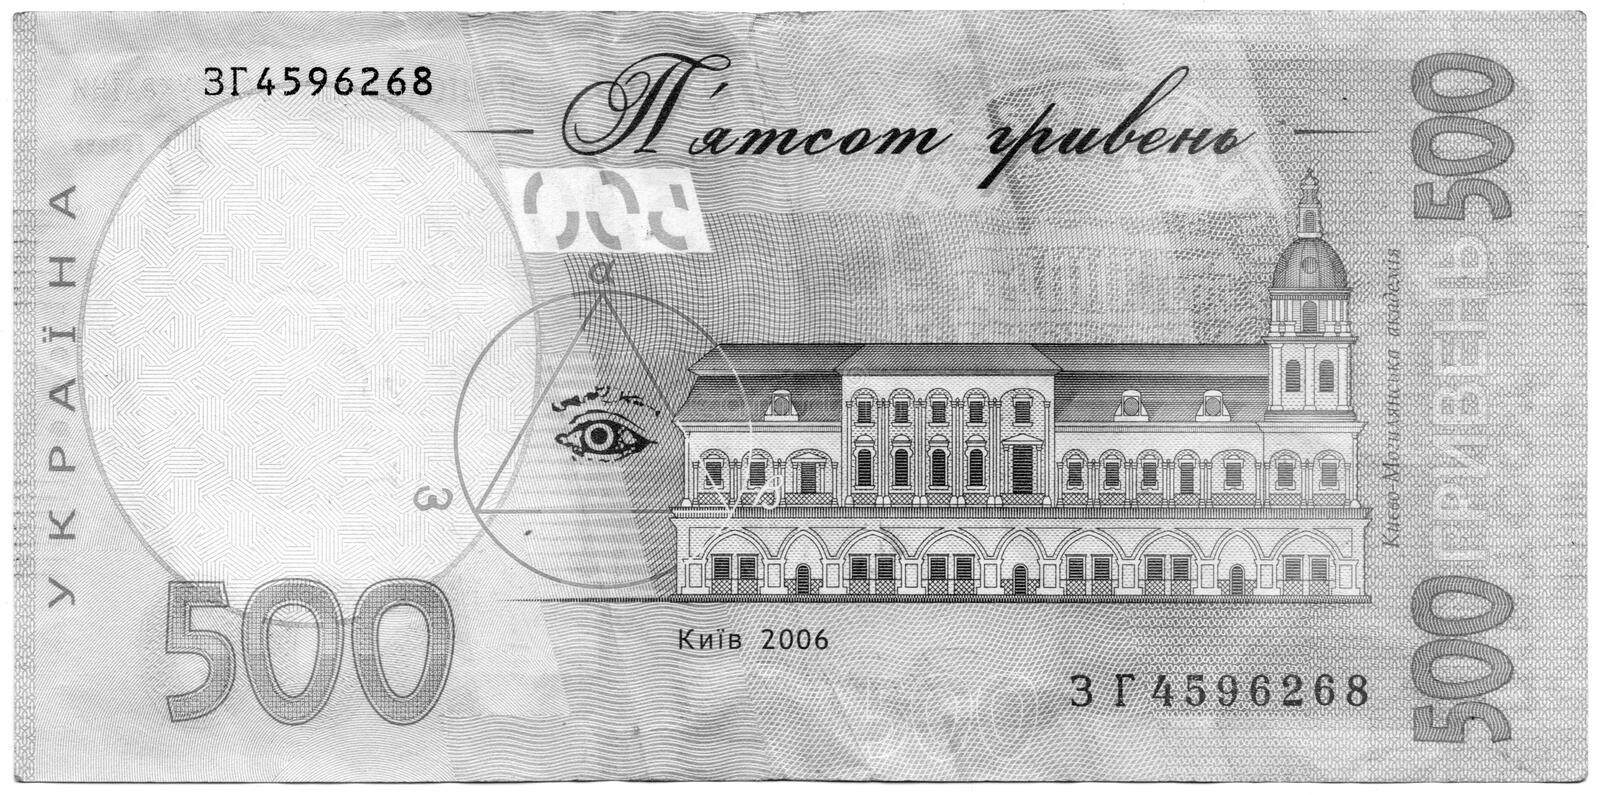 500 hryvnia, Ukrainian banknote. Kiev-Mohyla Academy. Close-Up, High resolution photo. Backside stock images